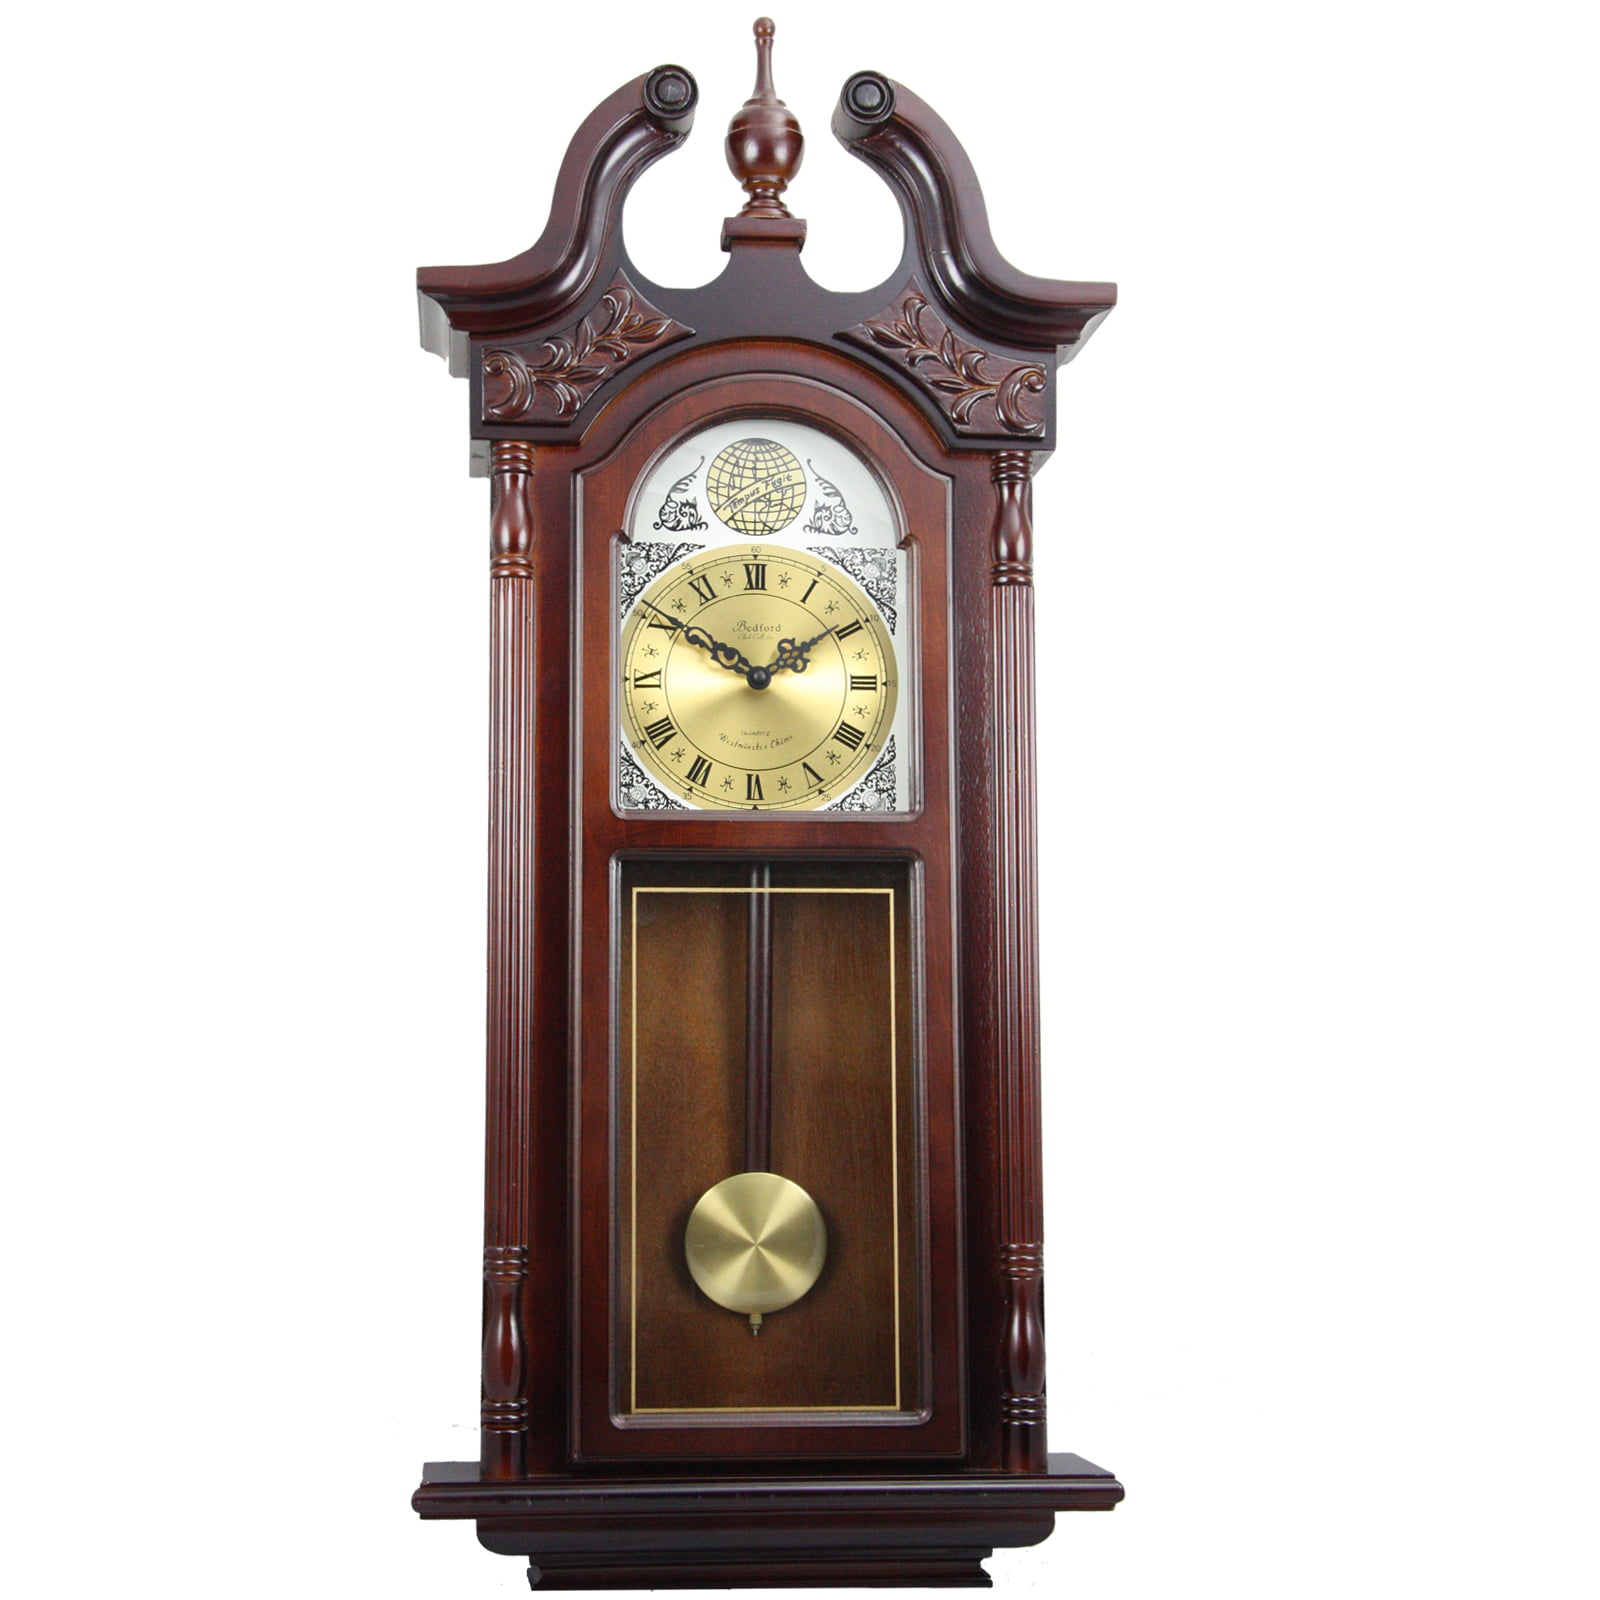 "Bedford Clock Collection 38"" Grand Antique Chiming Wall Clock with Roman Numerals in... by Supplier Generic"